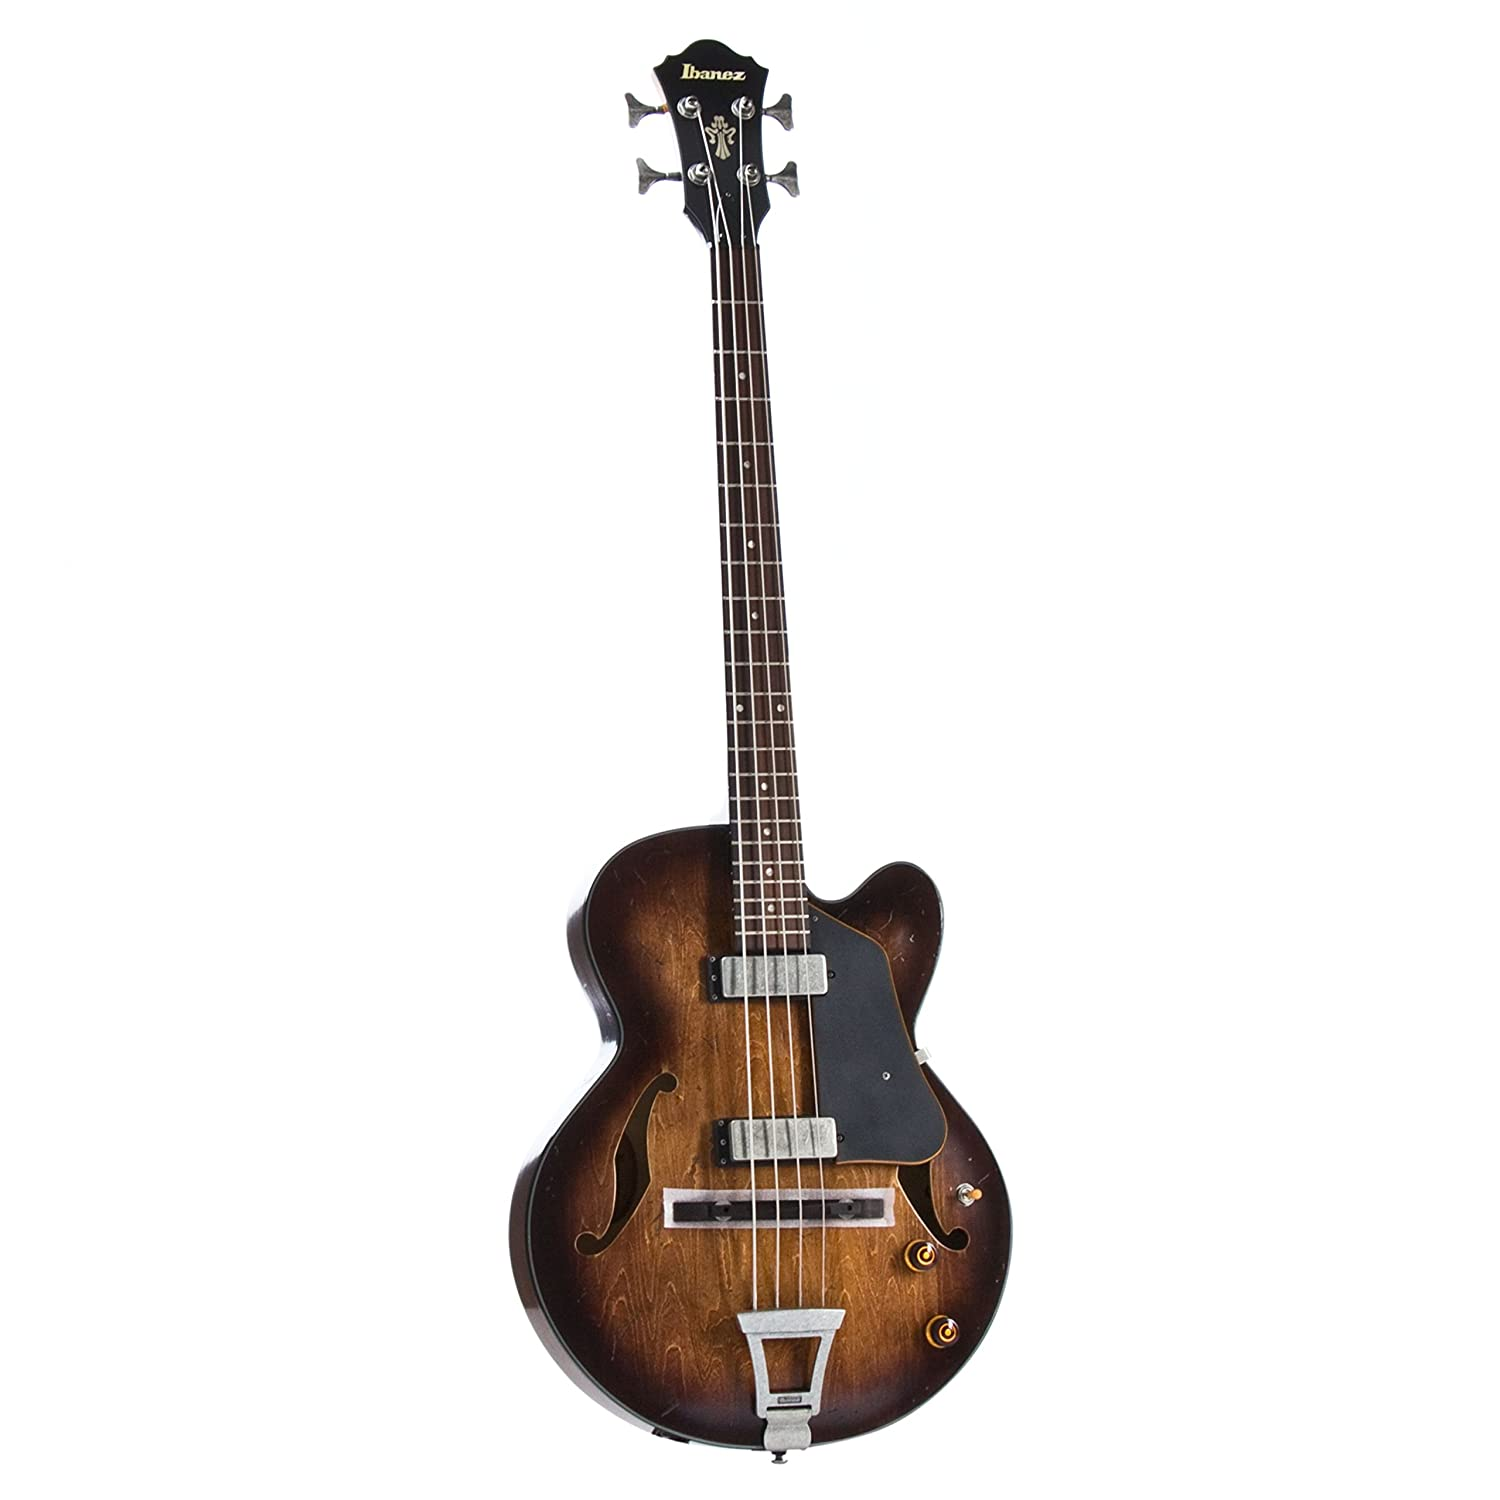 ibanez afbv200a tcl artcore bass musical instruments